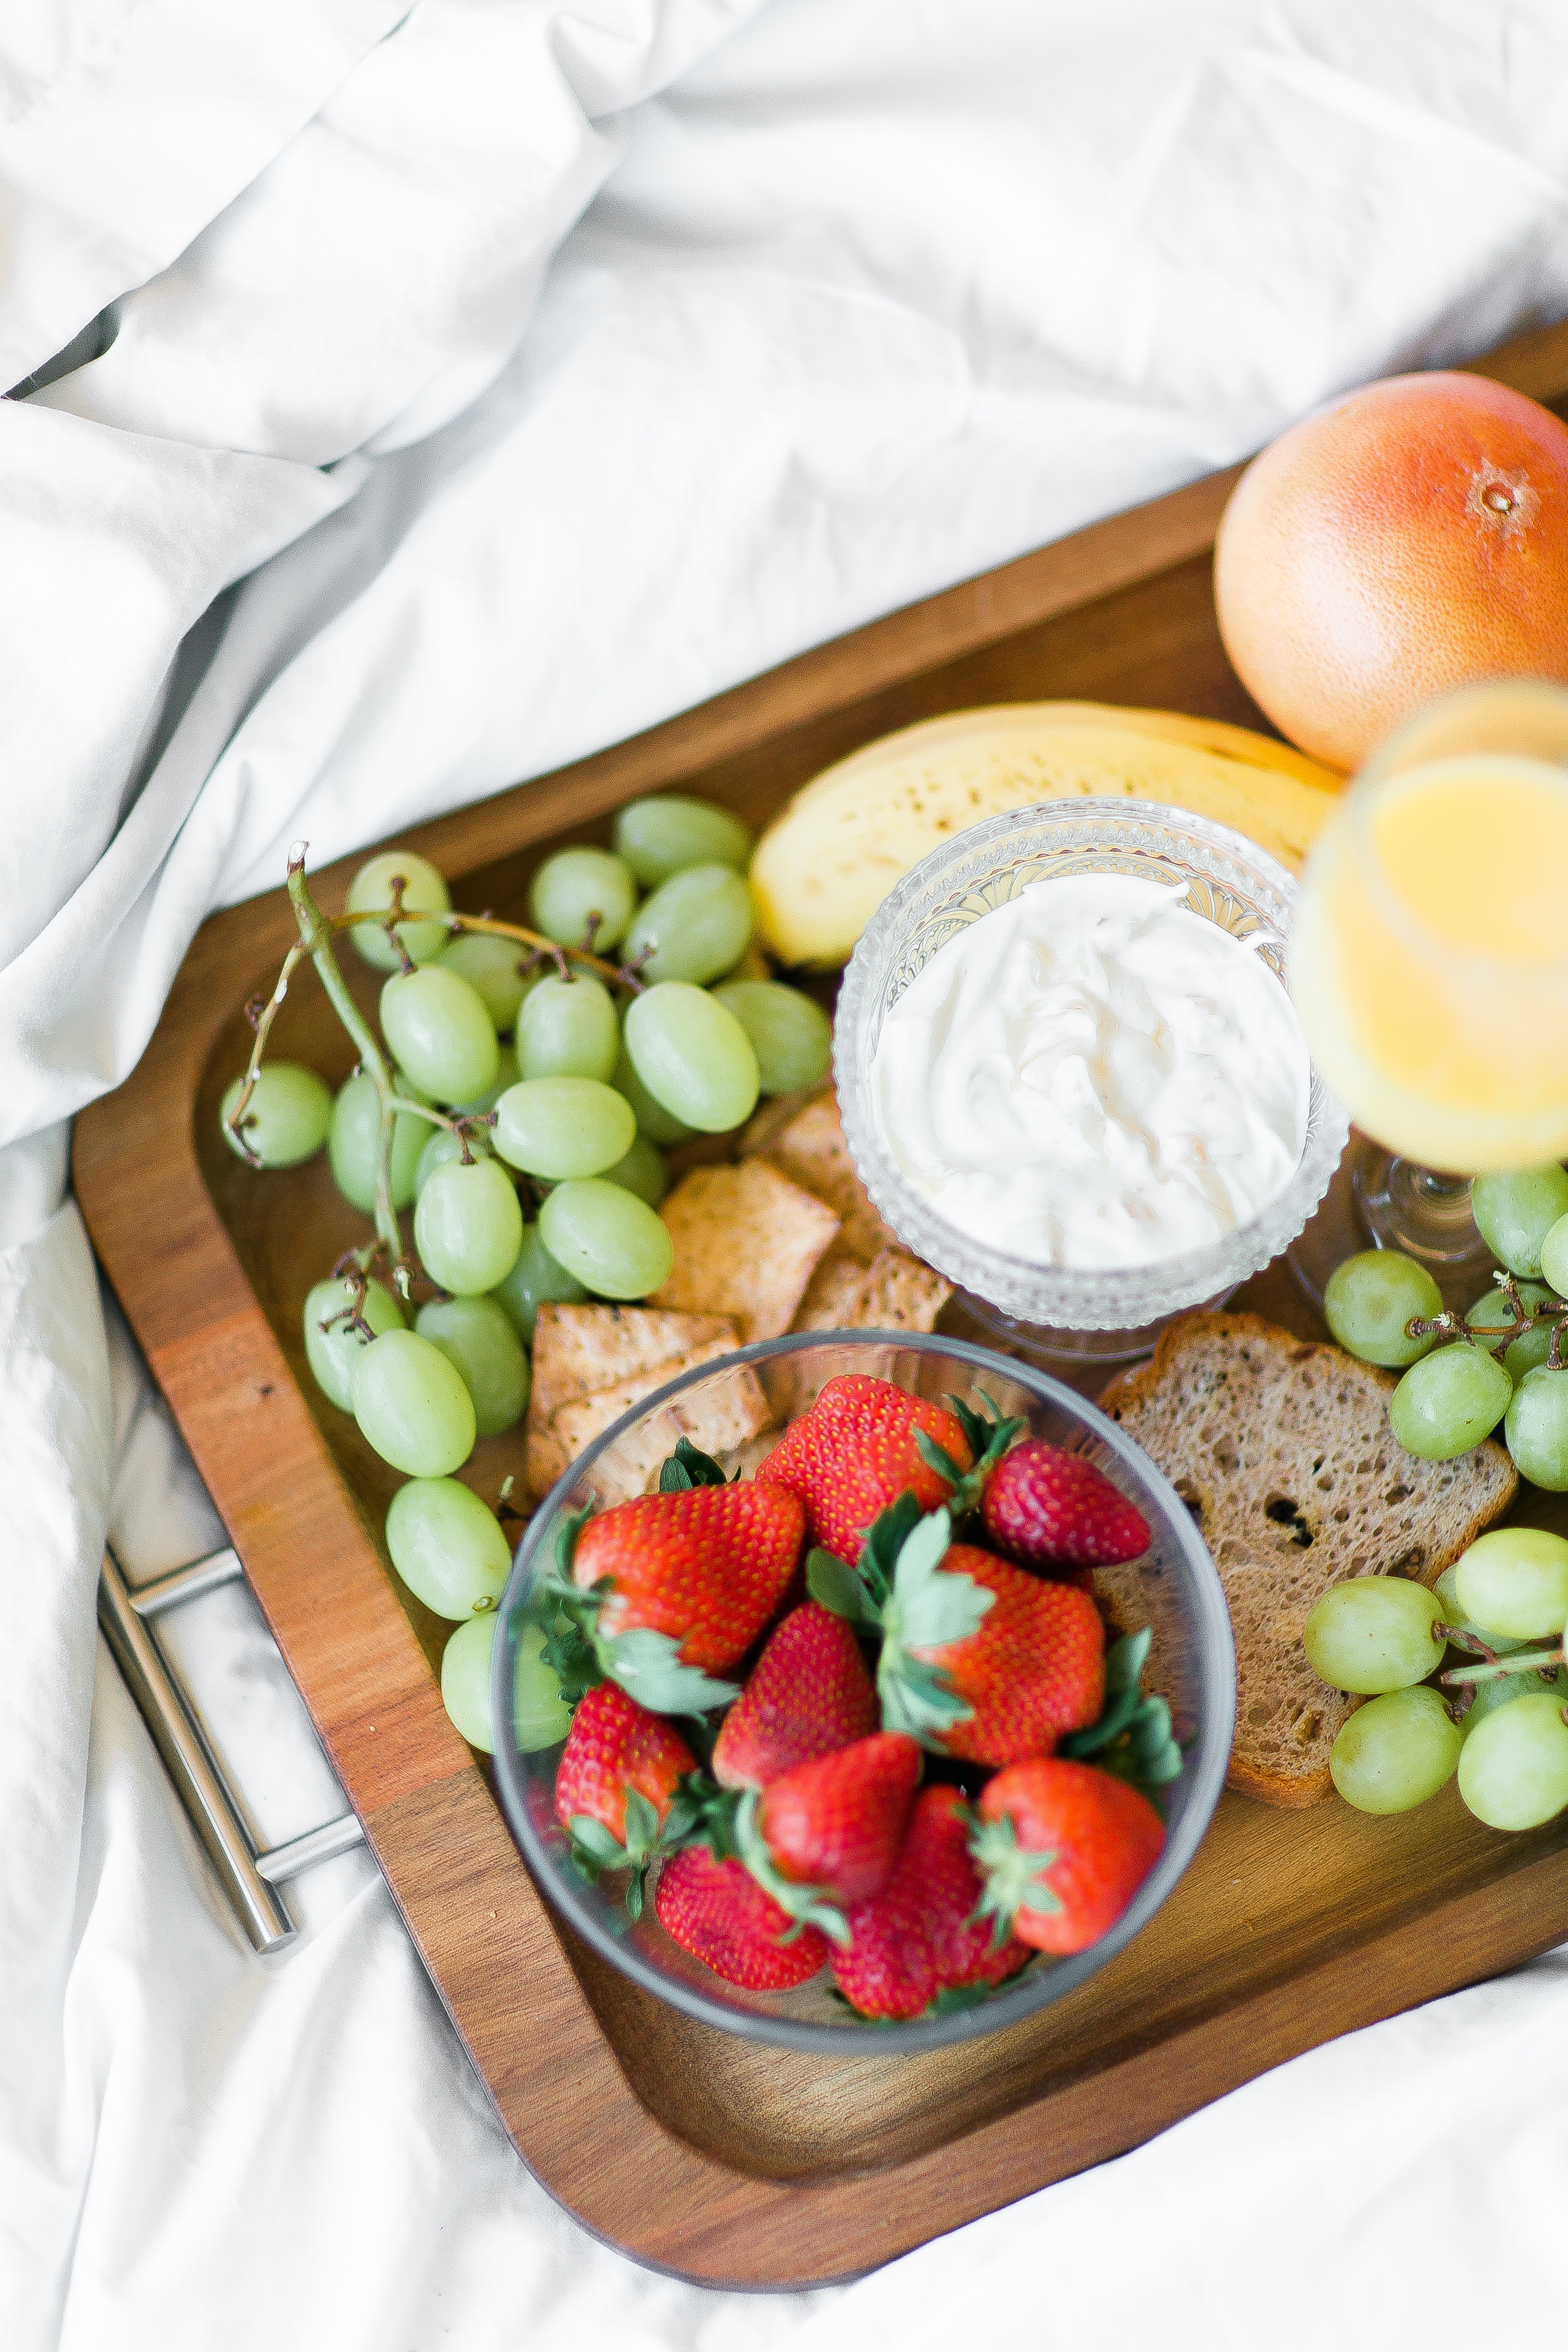 room service tray filled with fruit, crackers, bread and yogurt